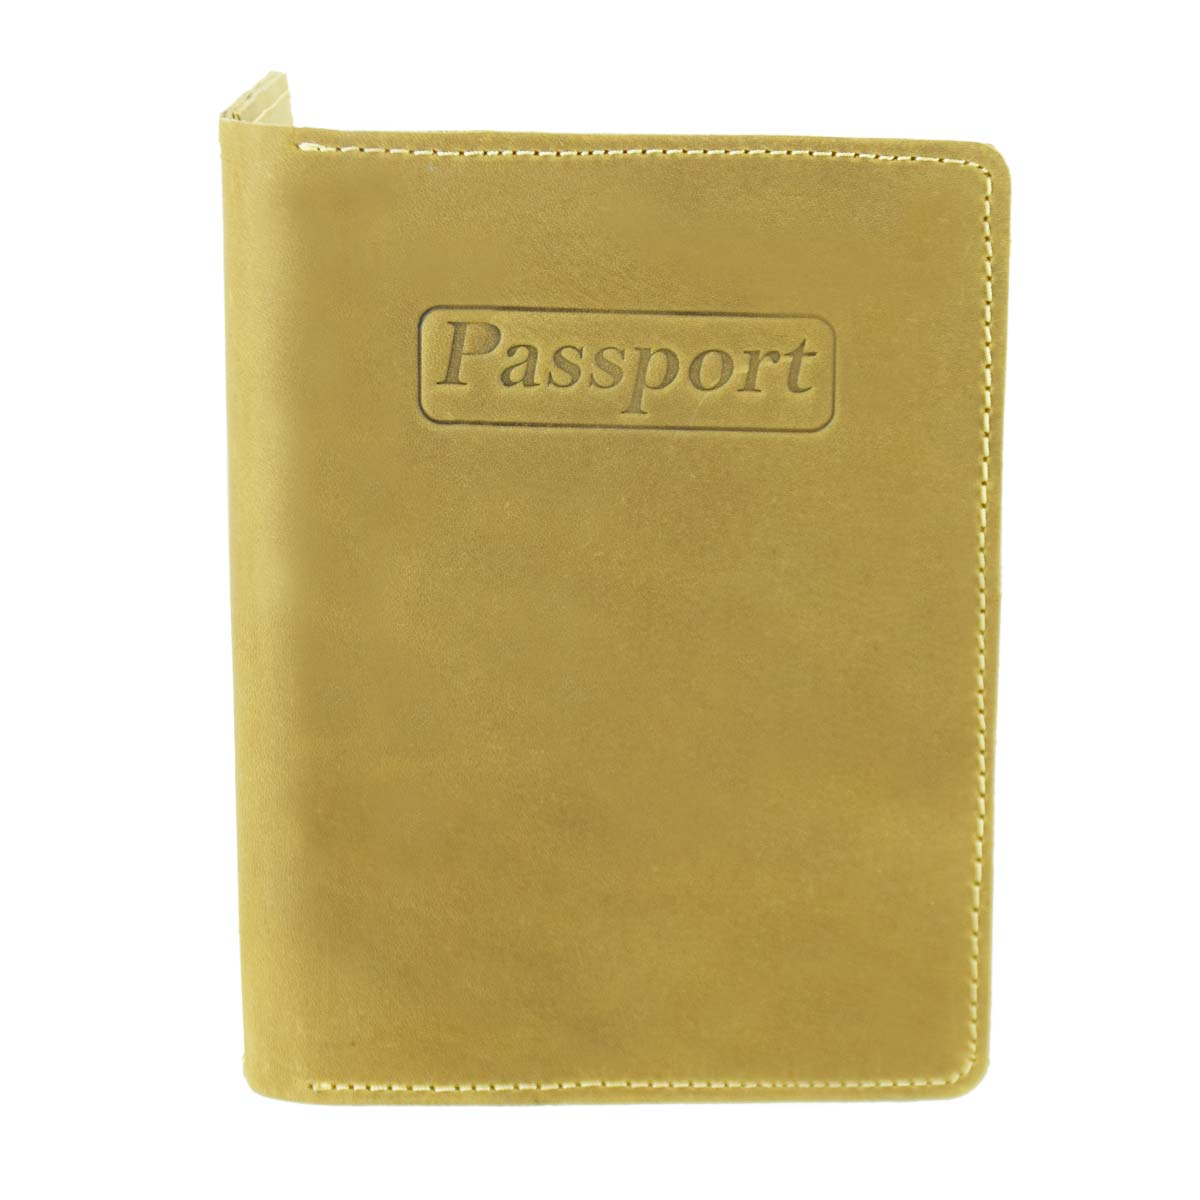 TAN LEATHER PASSPORT HOLDER